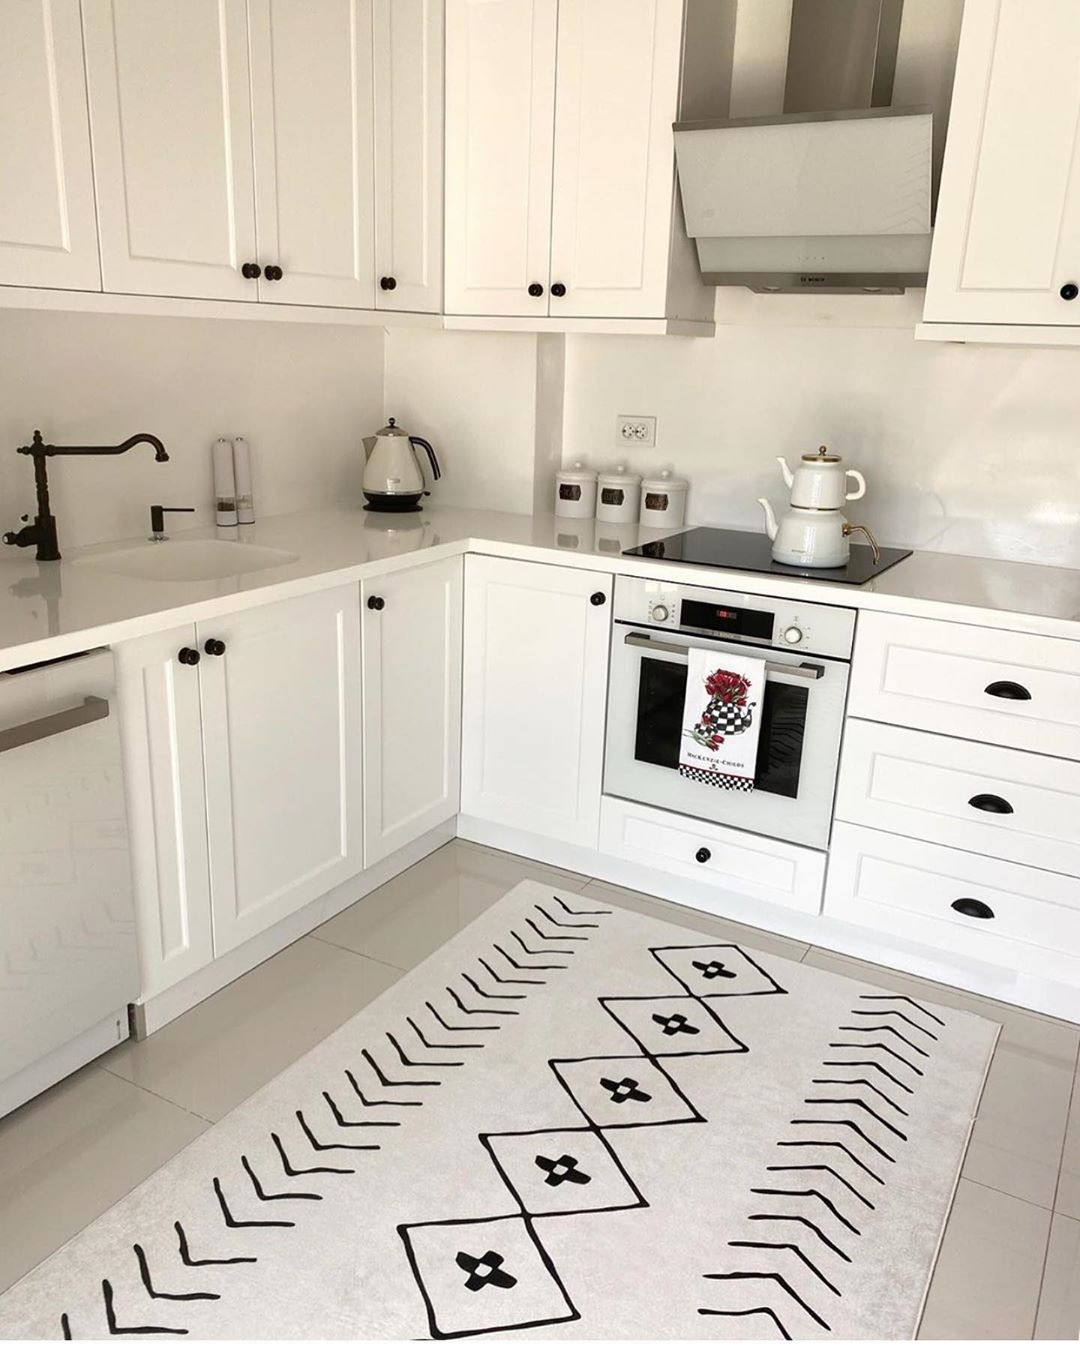 The Most Spectacular Kitchen Decoration Models of 2021 (22)